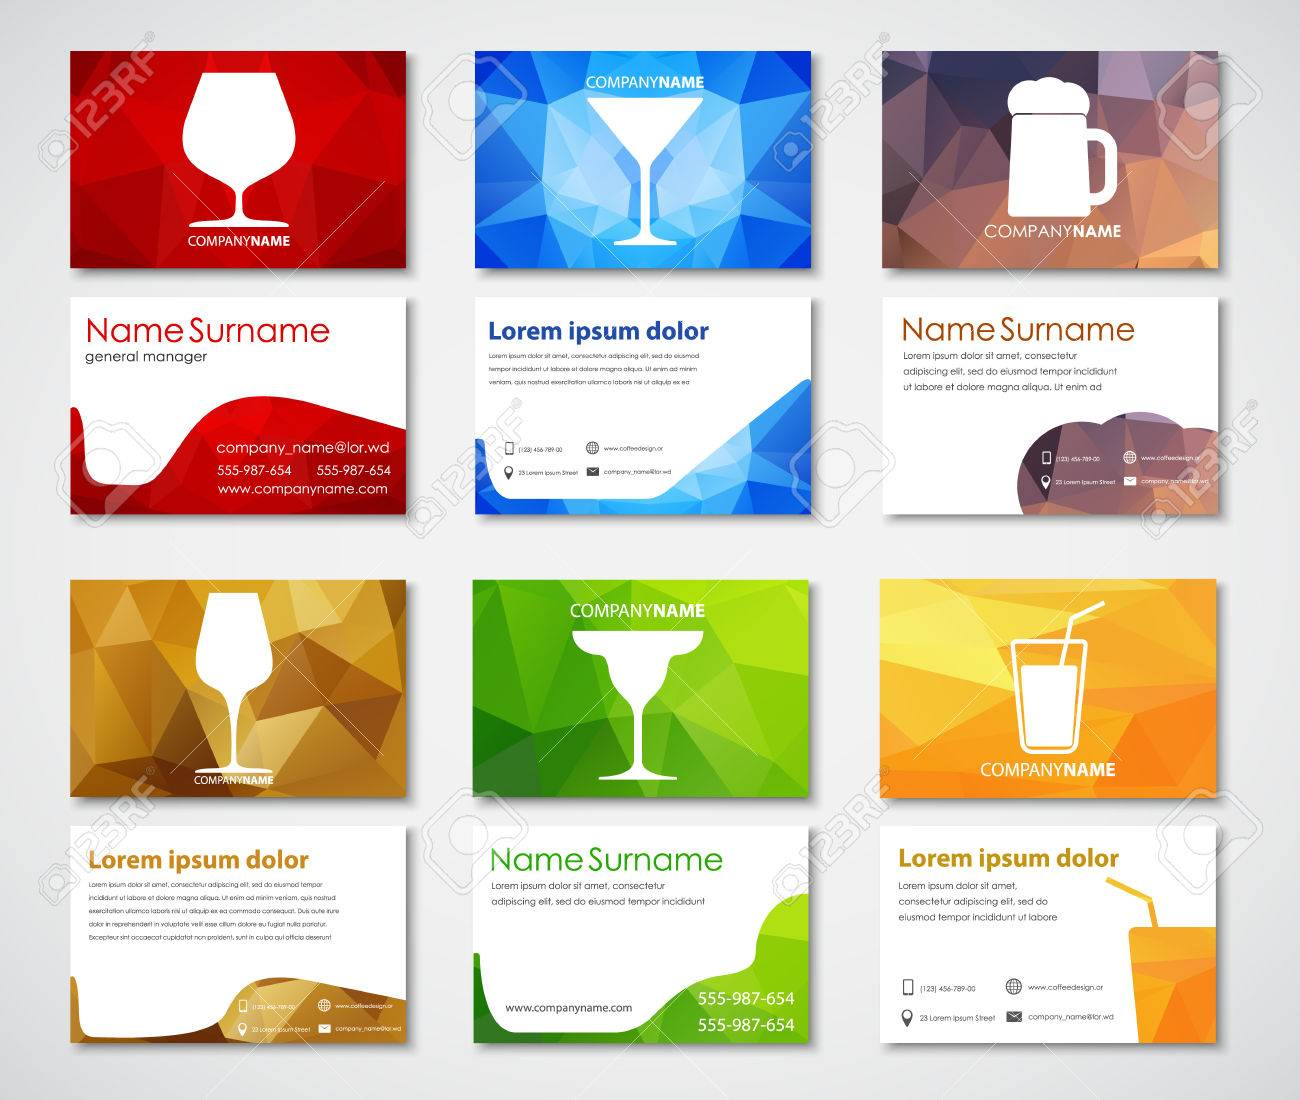 Design of business cards for cafes bars and restaurants polygonal design of business cards for cafes bars and restaurants polygonal colorful business card templates colourmoves